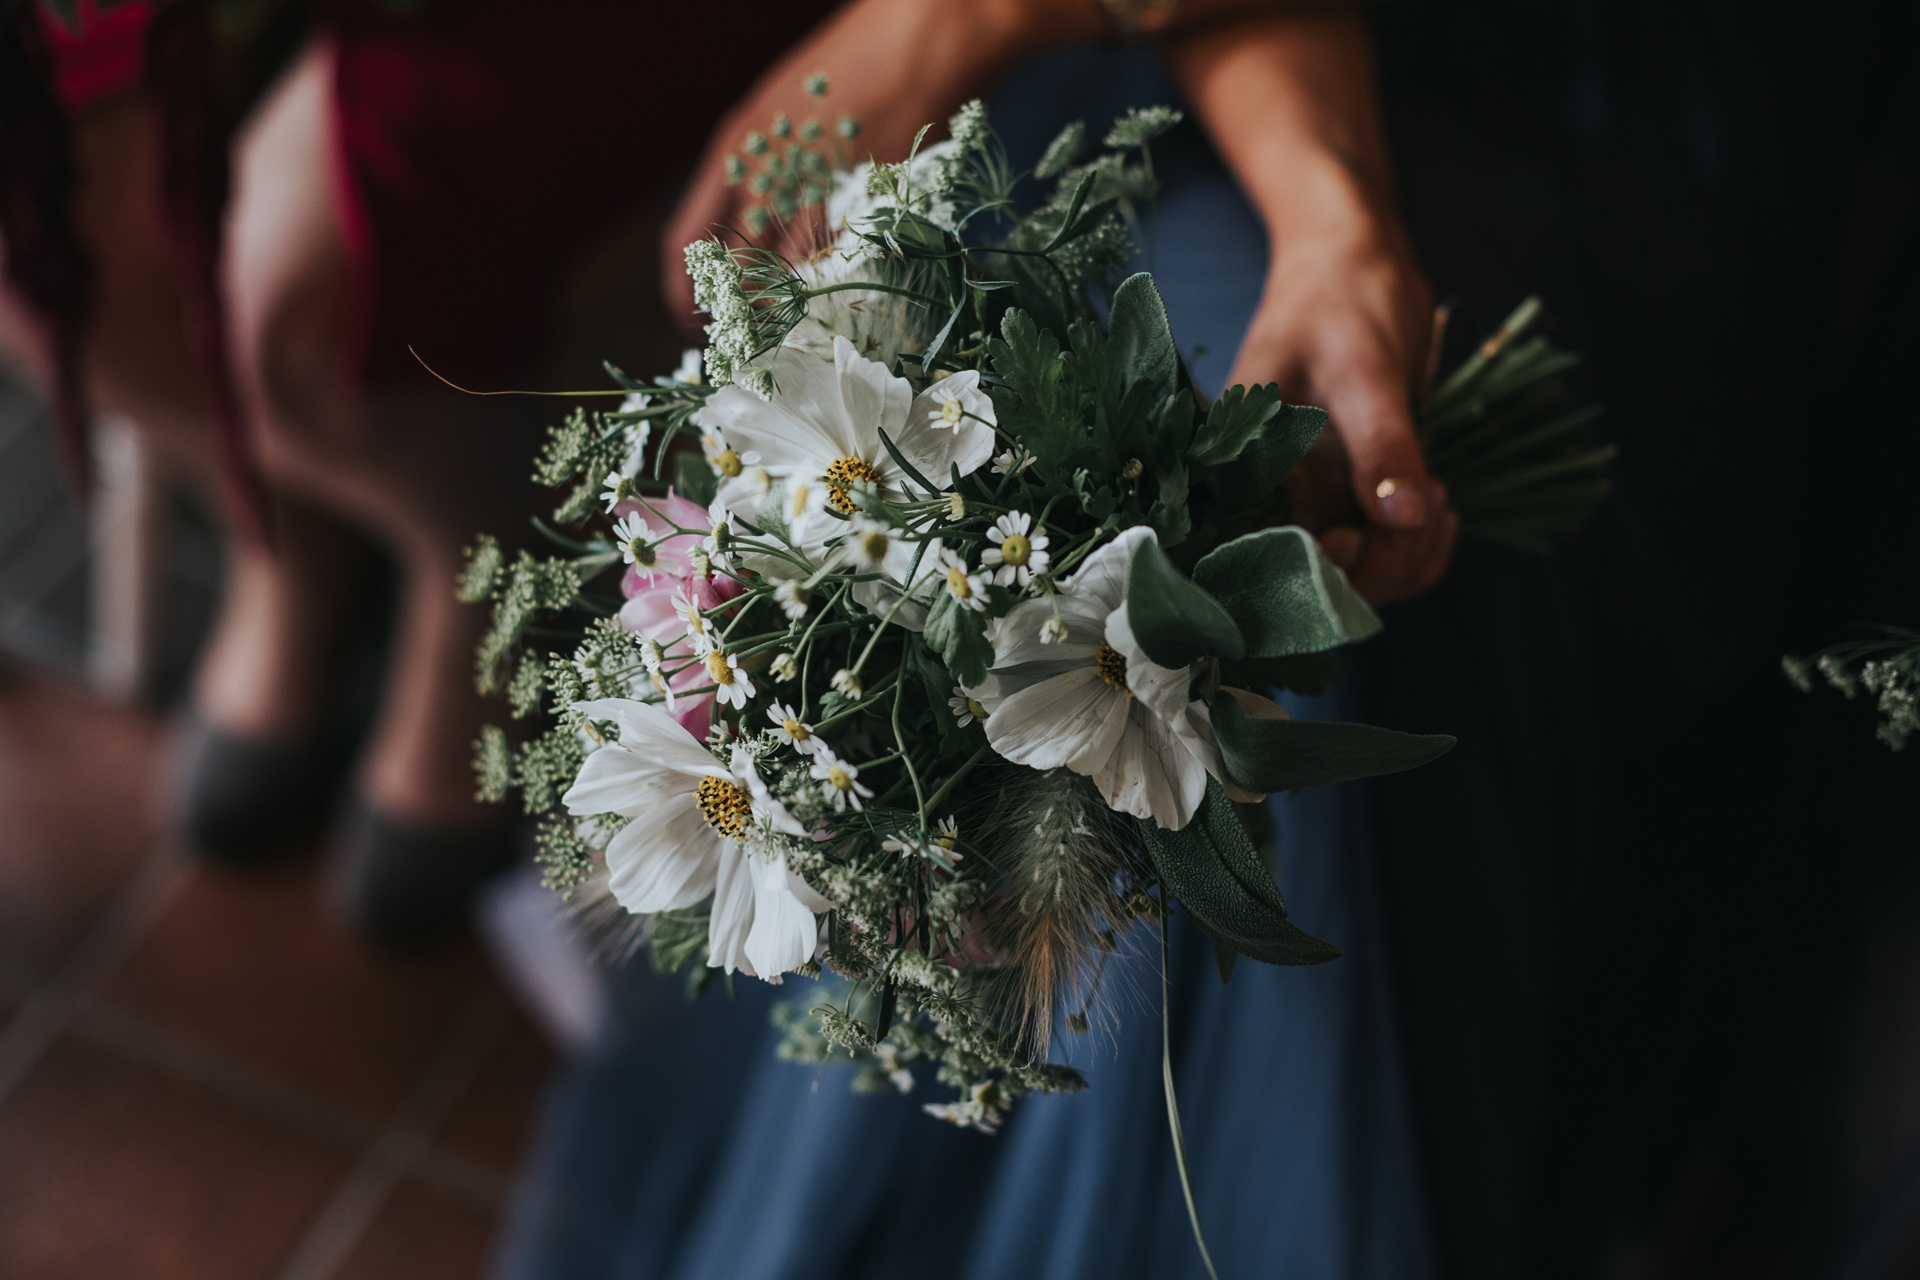 Close up of a bridesmaids bouquet of wild seasonal flowers.